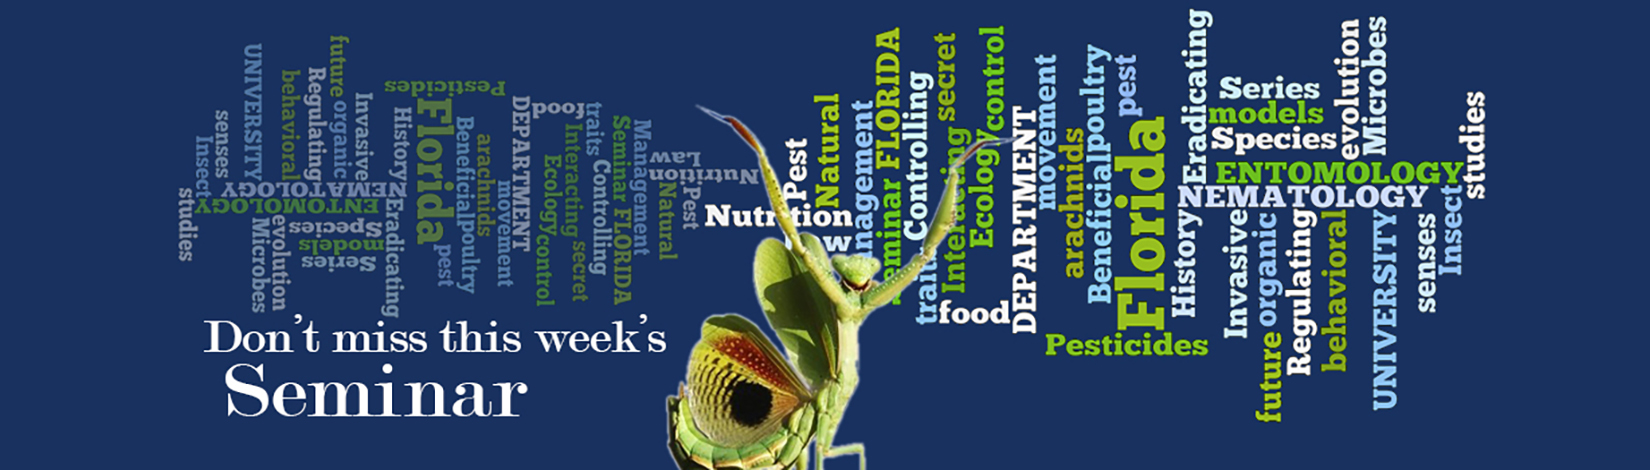 link to seminars page, image of praying mantis with words background